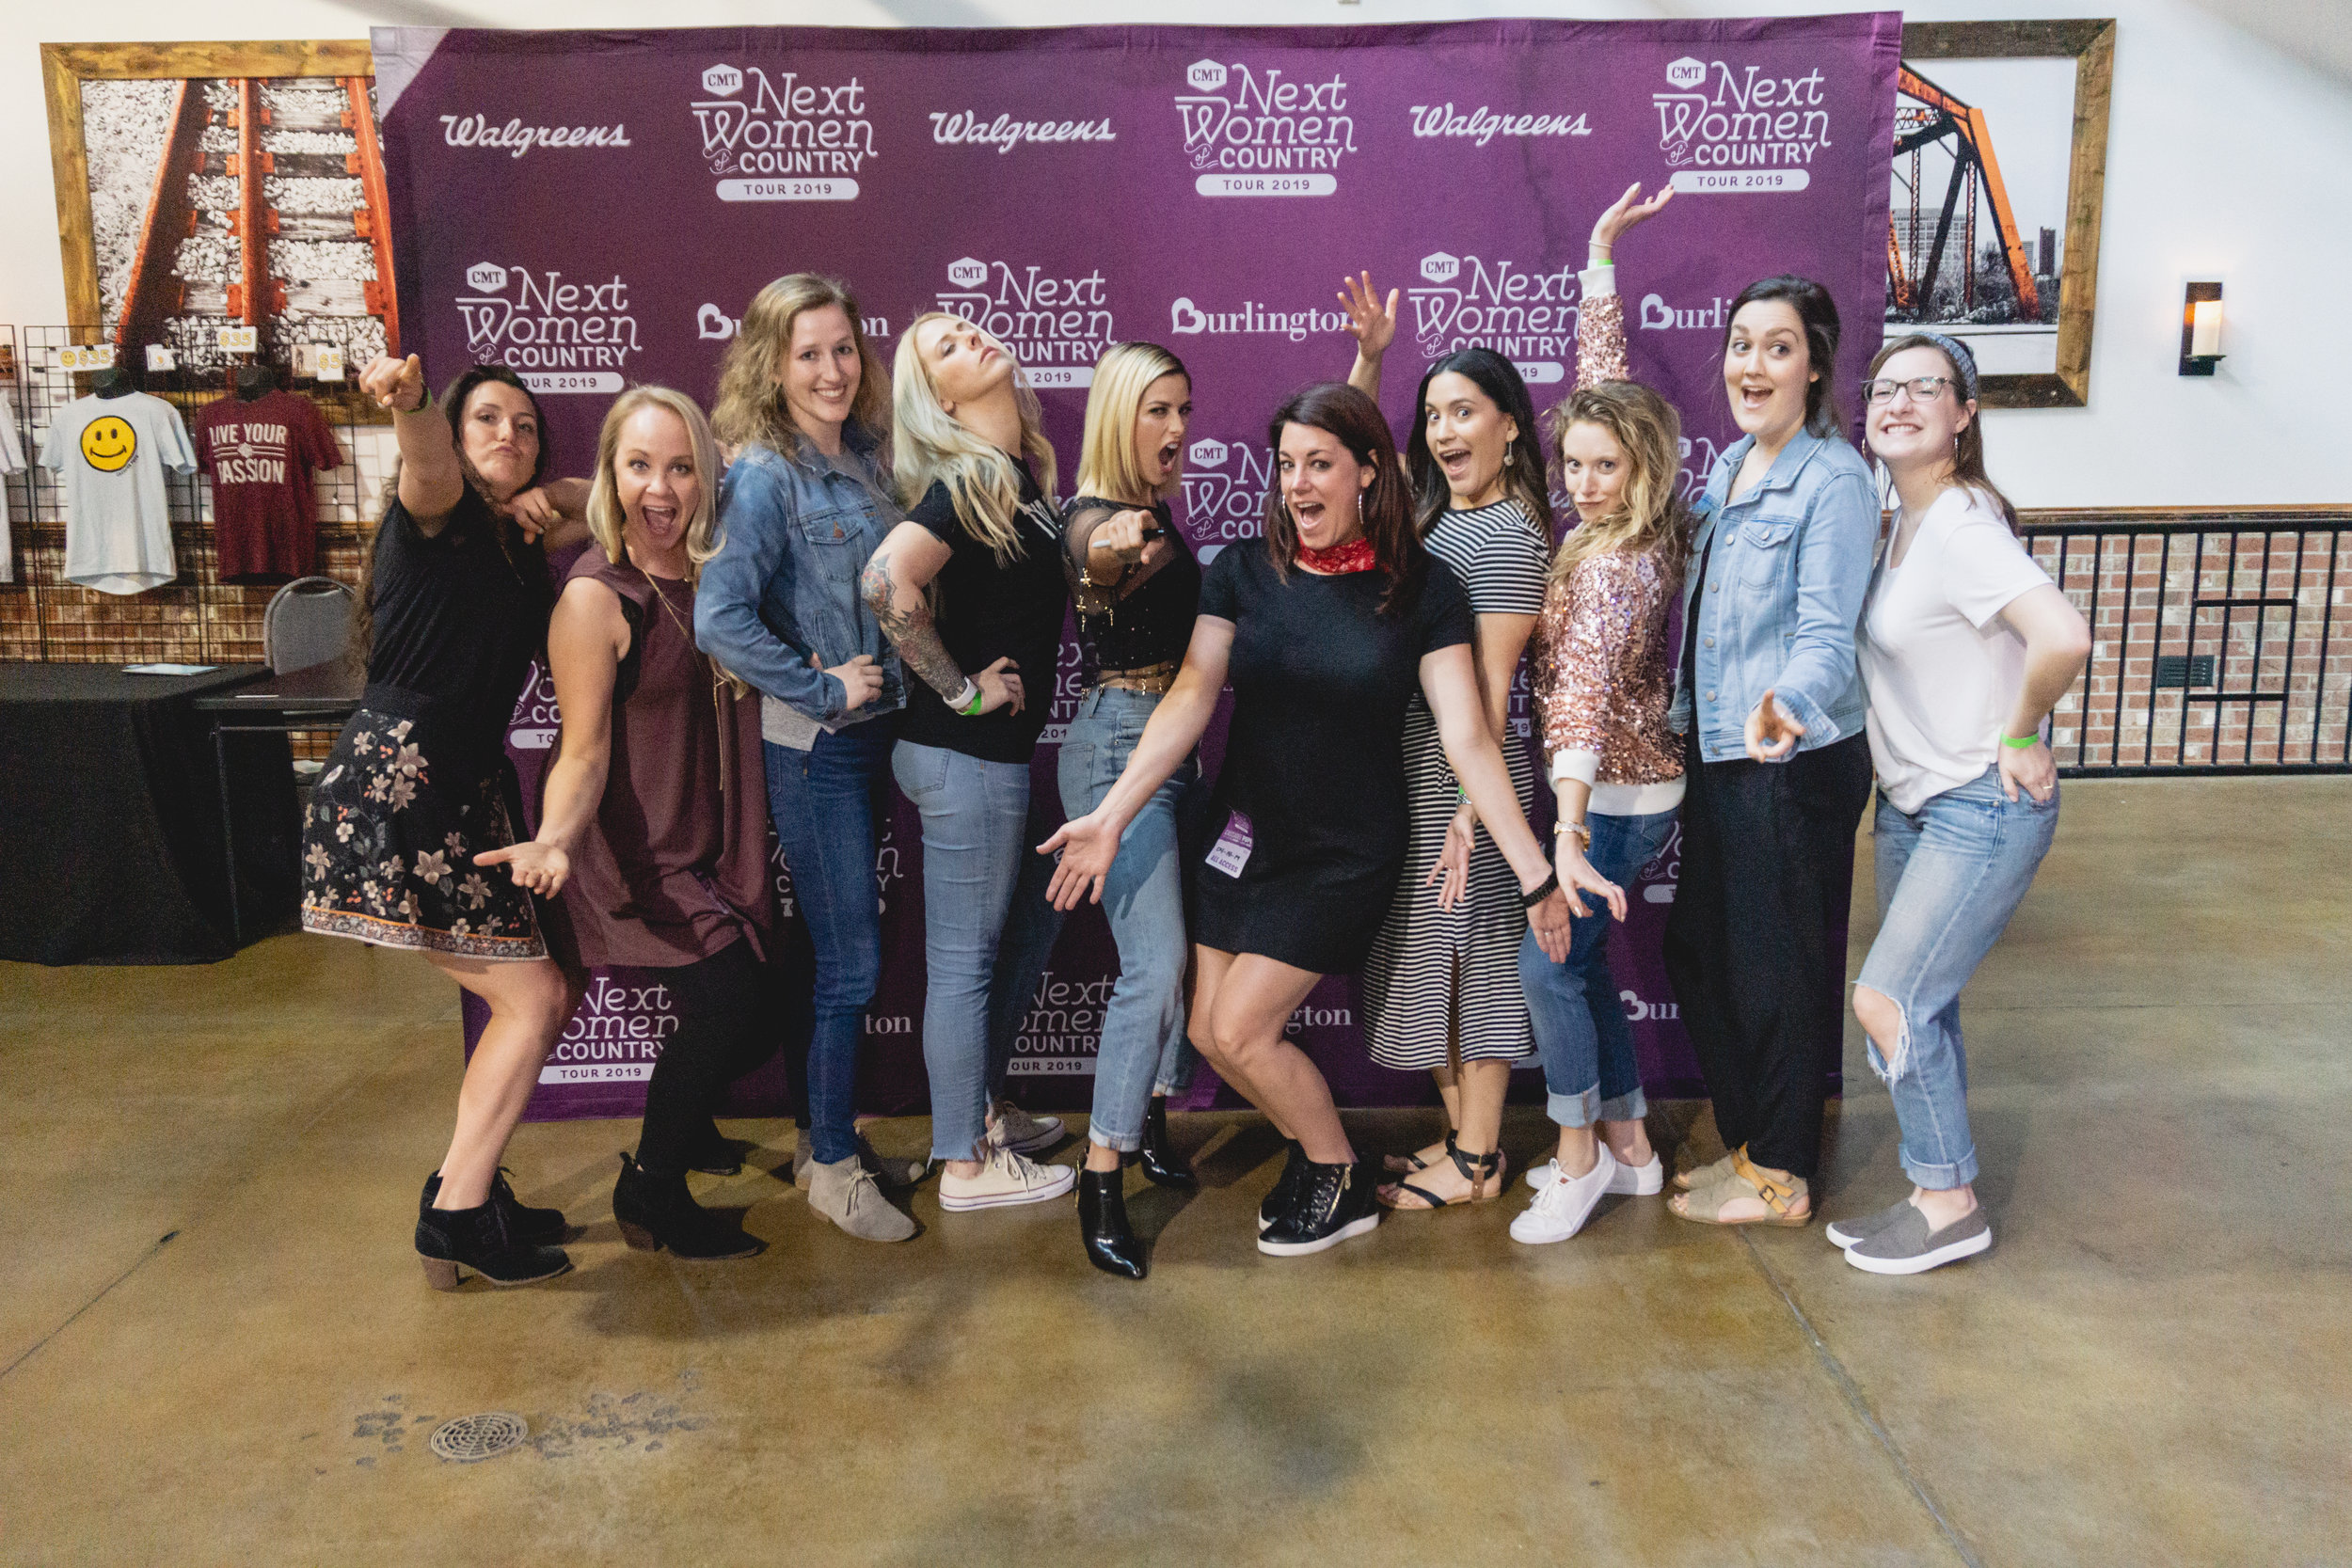 CP_04-18-19_Atlanta_M&G_CURB-00200.jpg